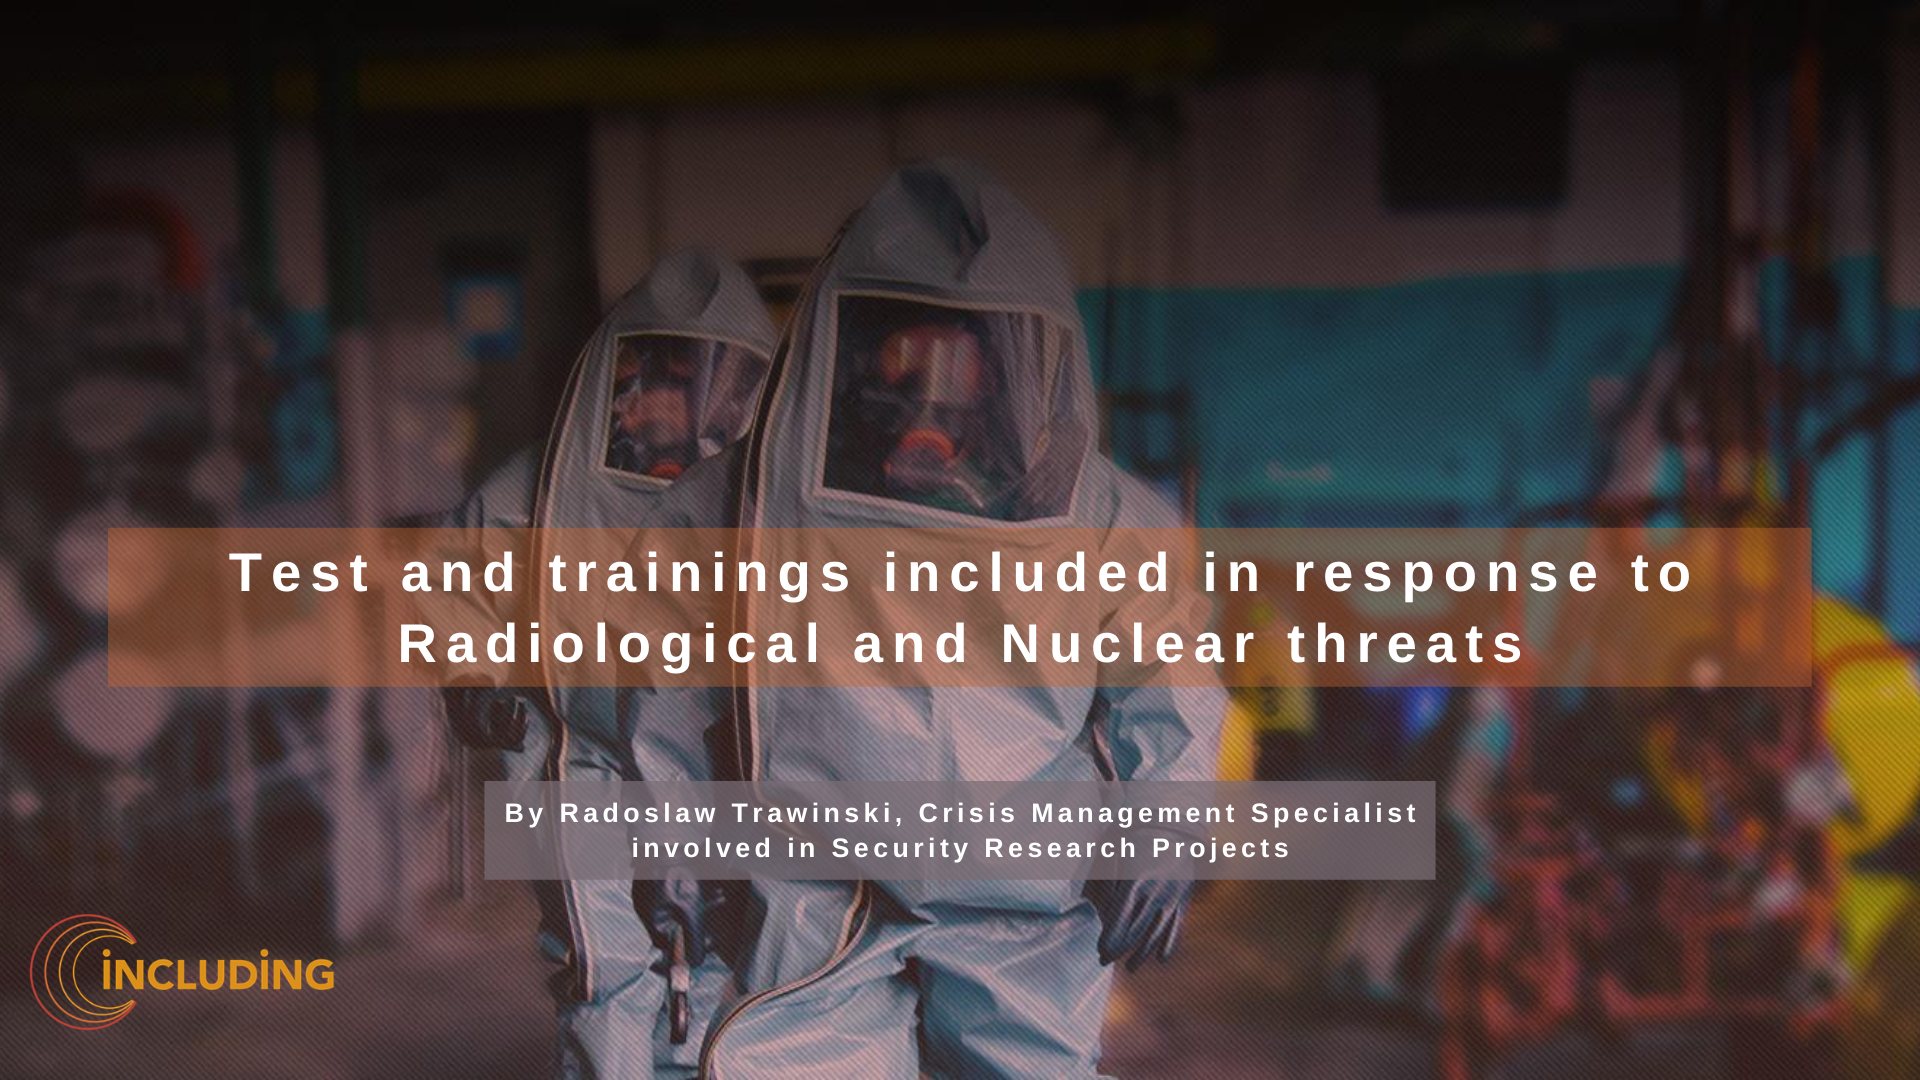 The release of 'Tests and trainings included in response to Radiological and Nuclear threats' article